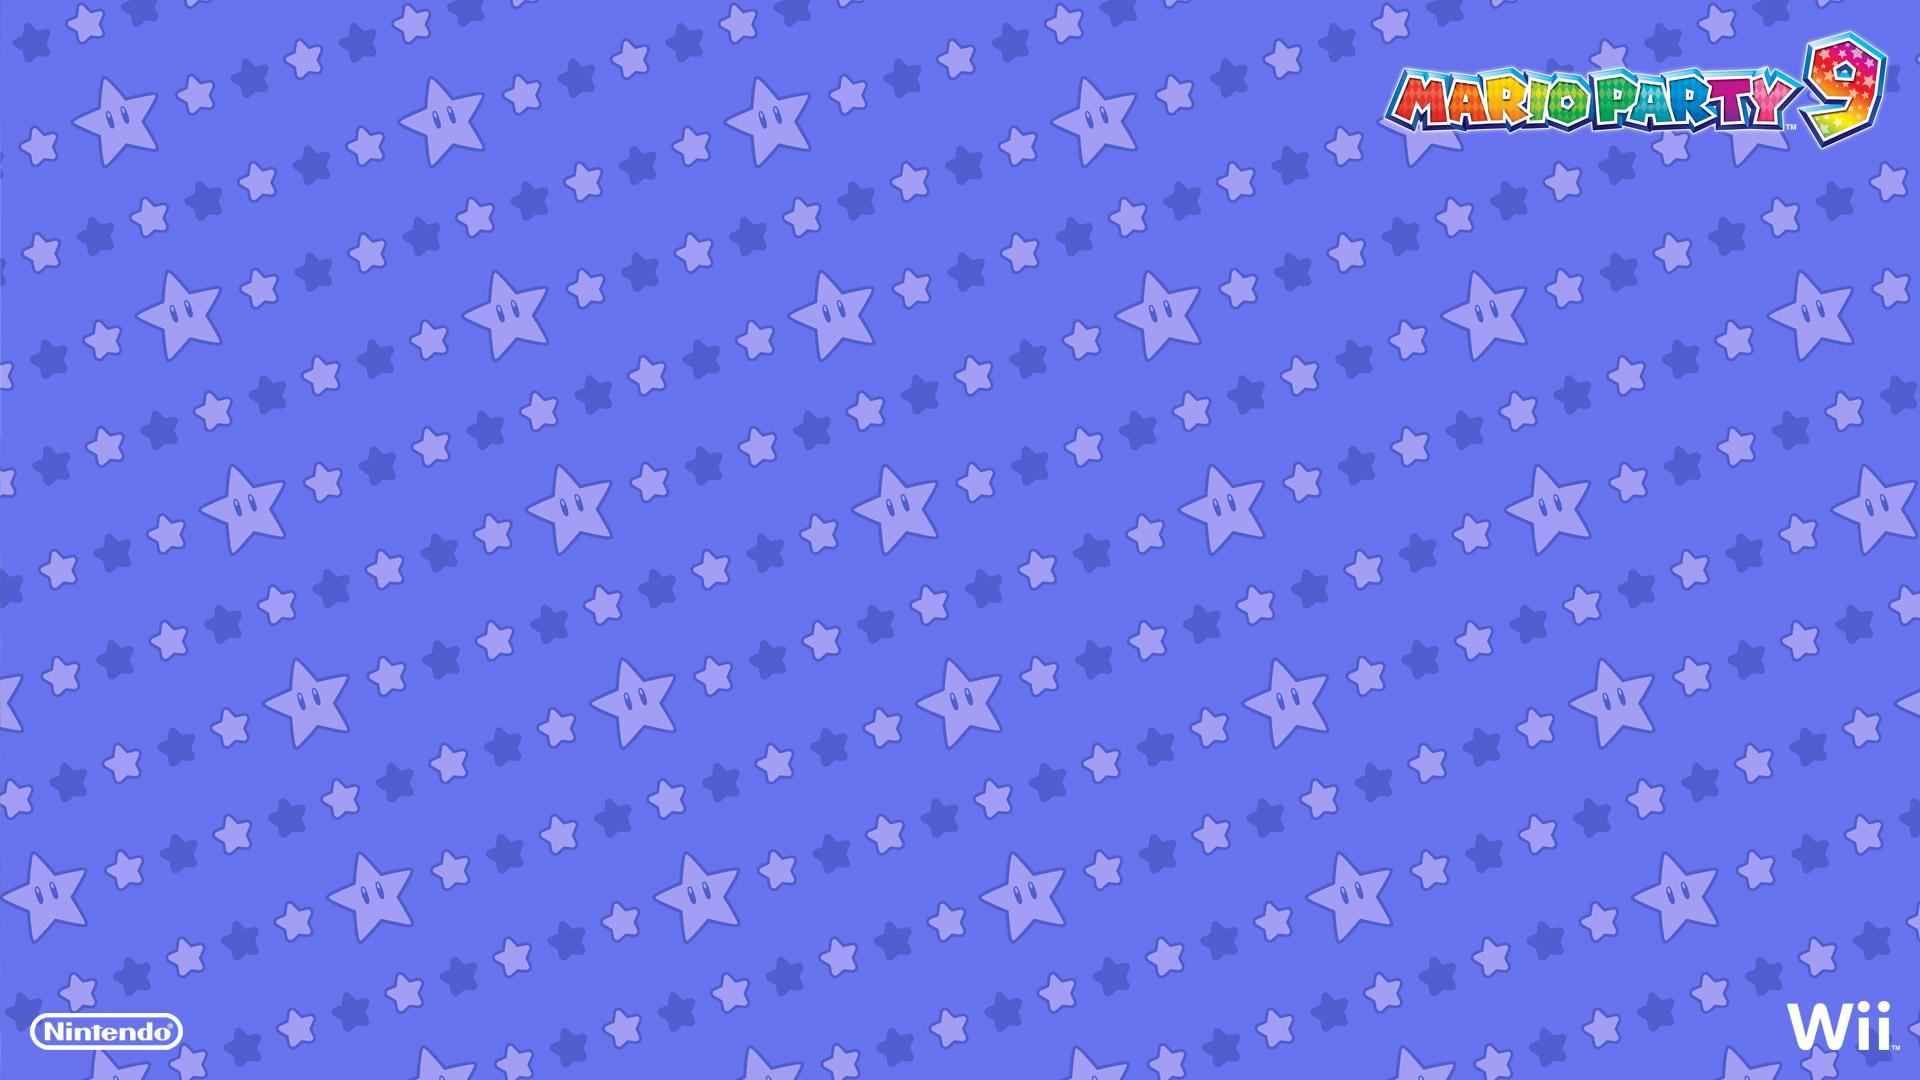 Desktop Wallpaper From Super Mario Games On The Wii